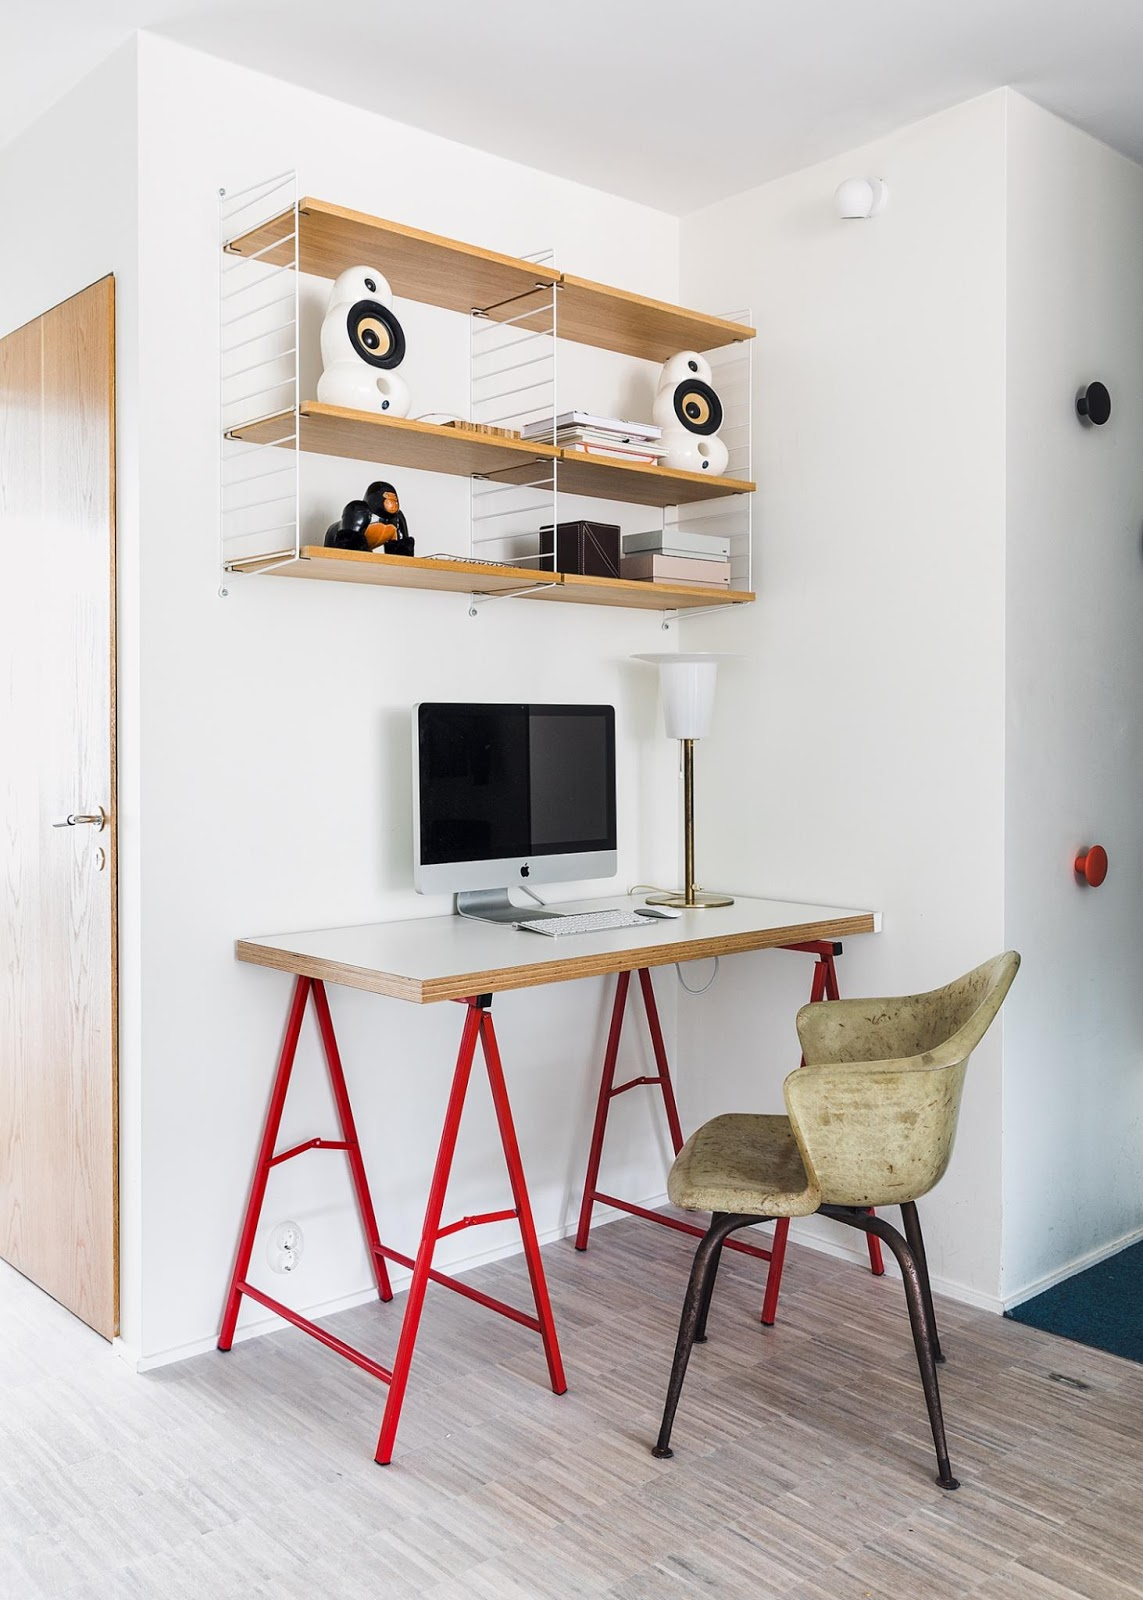 imac, string shelf and red legged table in the nordic interior